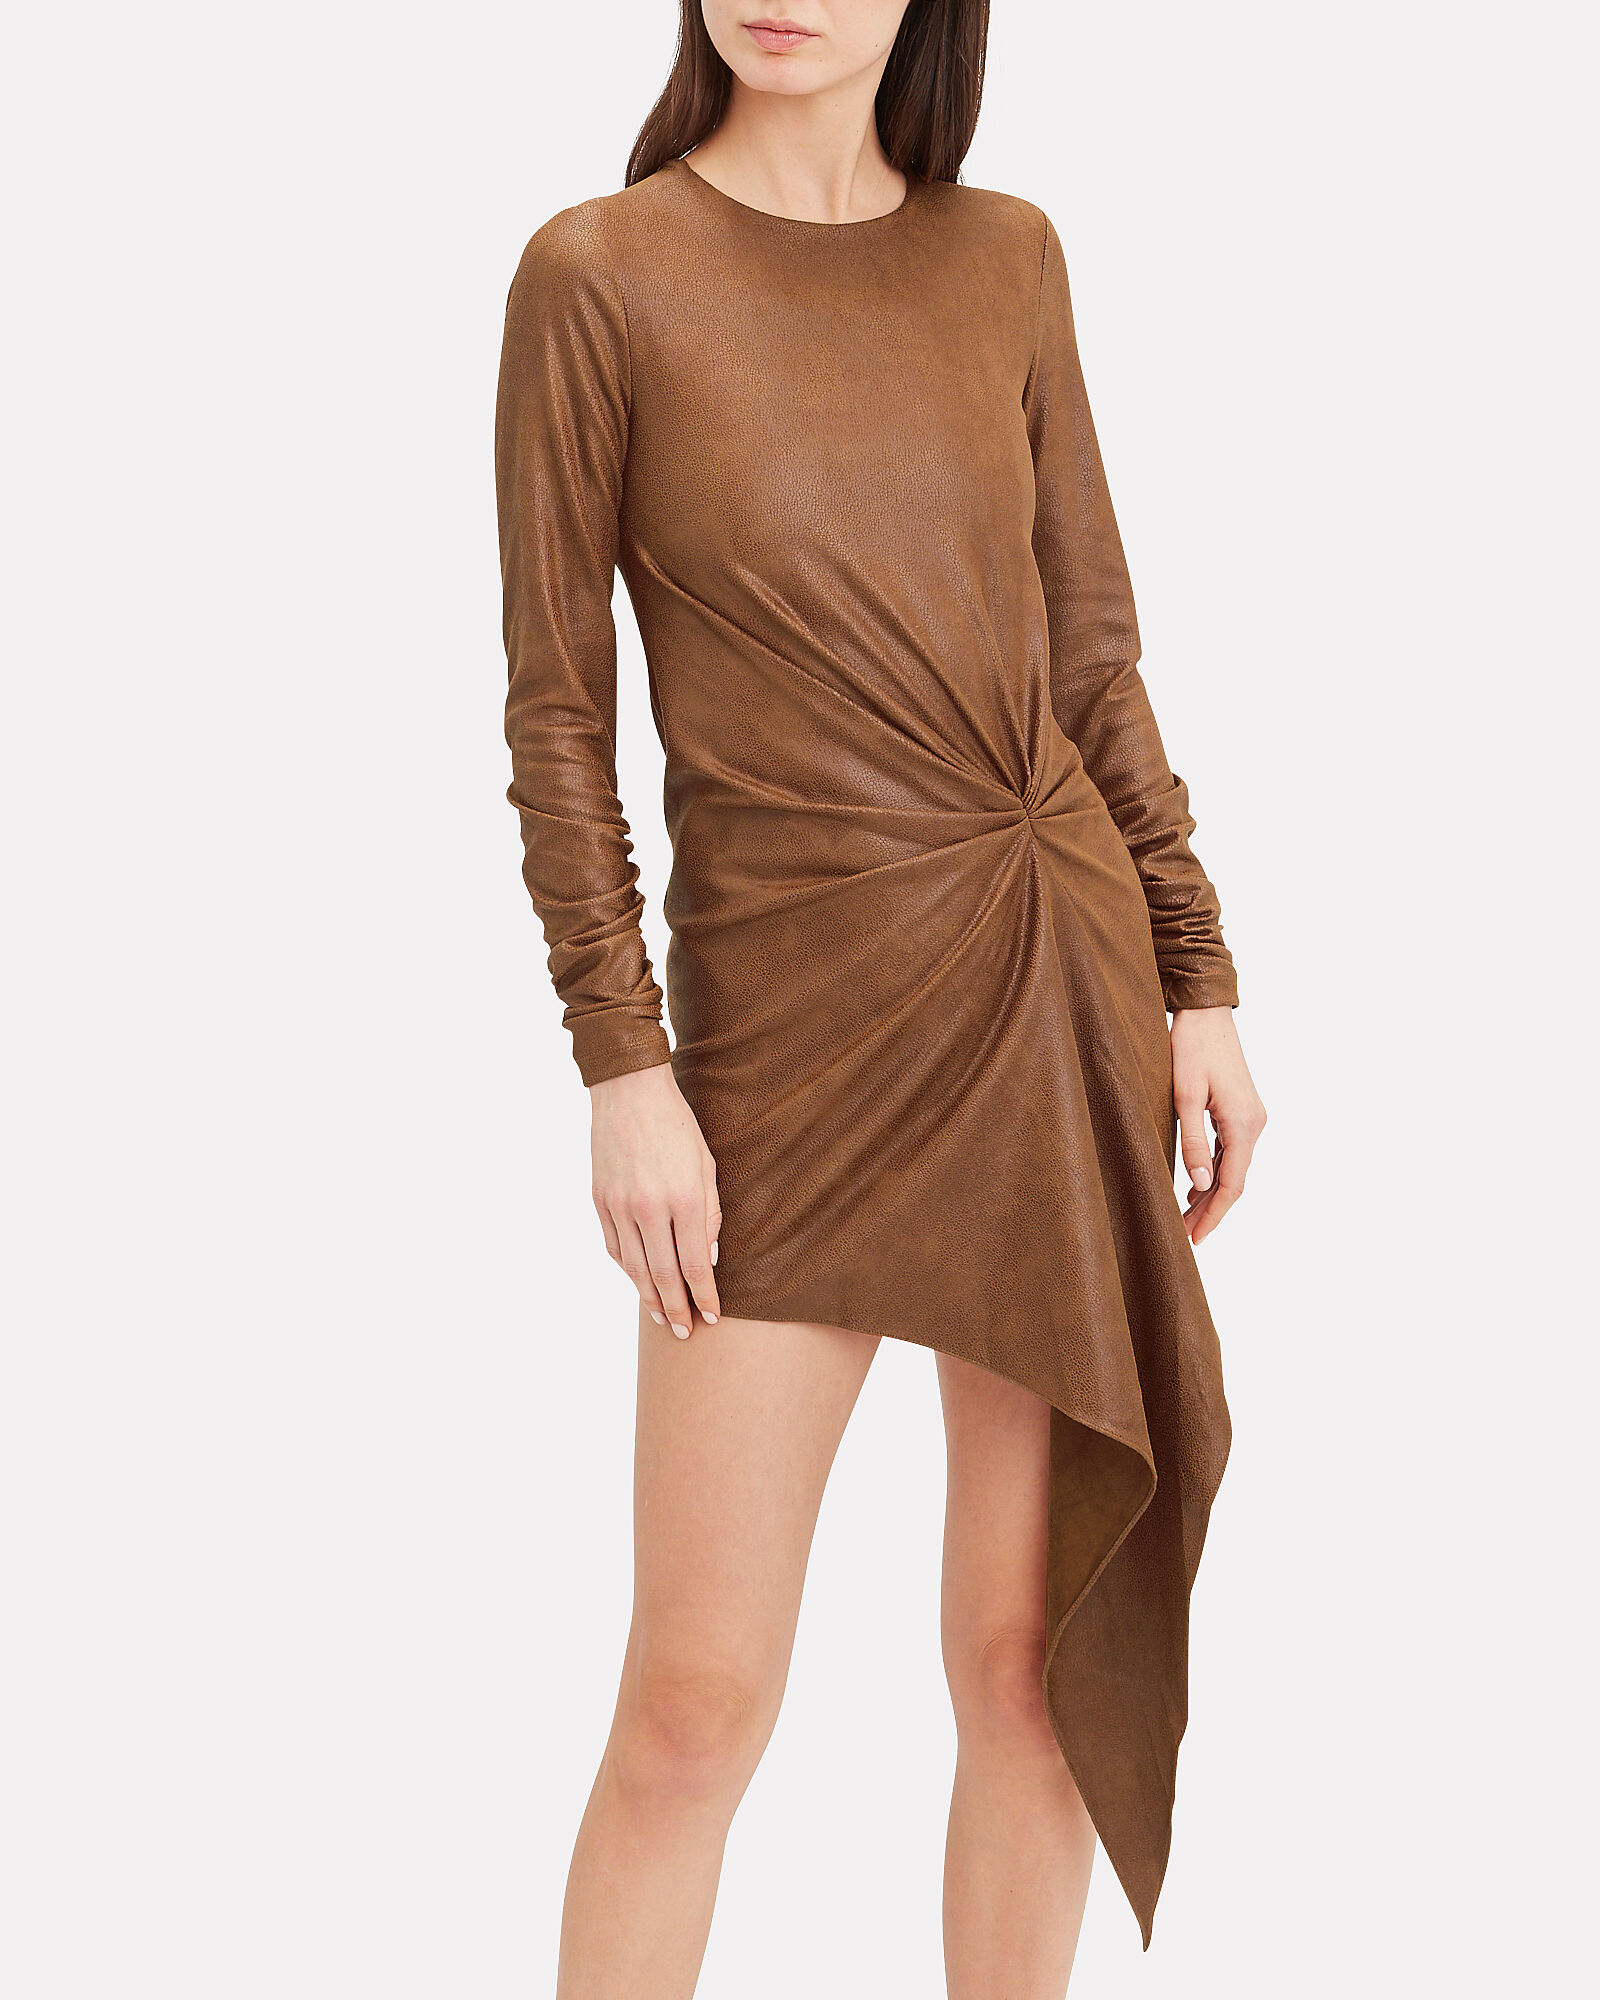 Haddasah Faux Leather Mini Dress, BROWN, hi-res